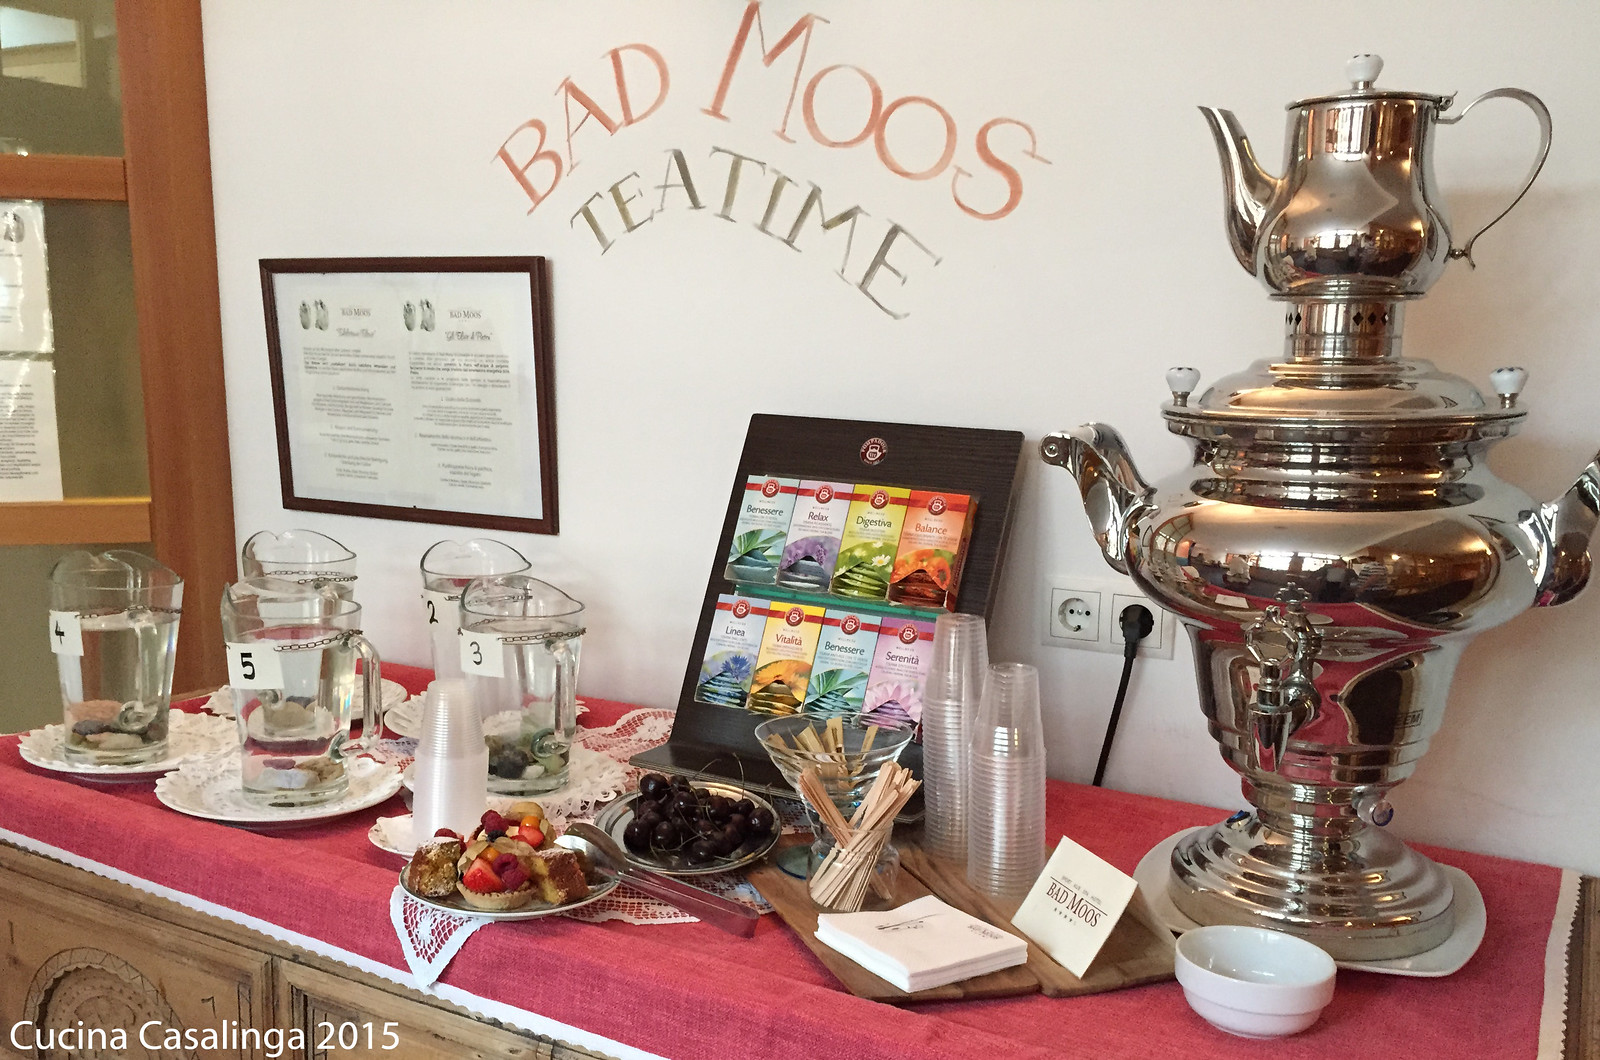 Bad Moos Spa Teatime